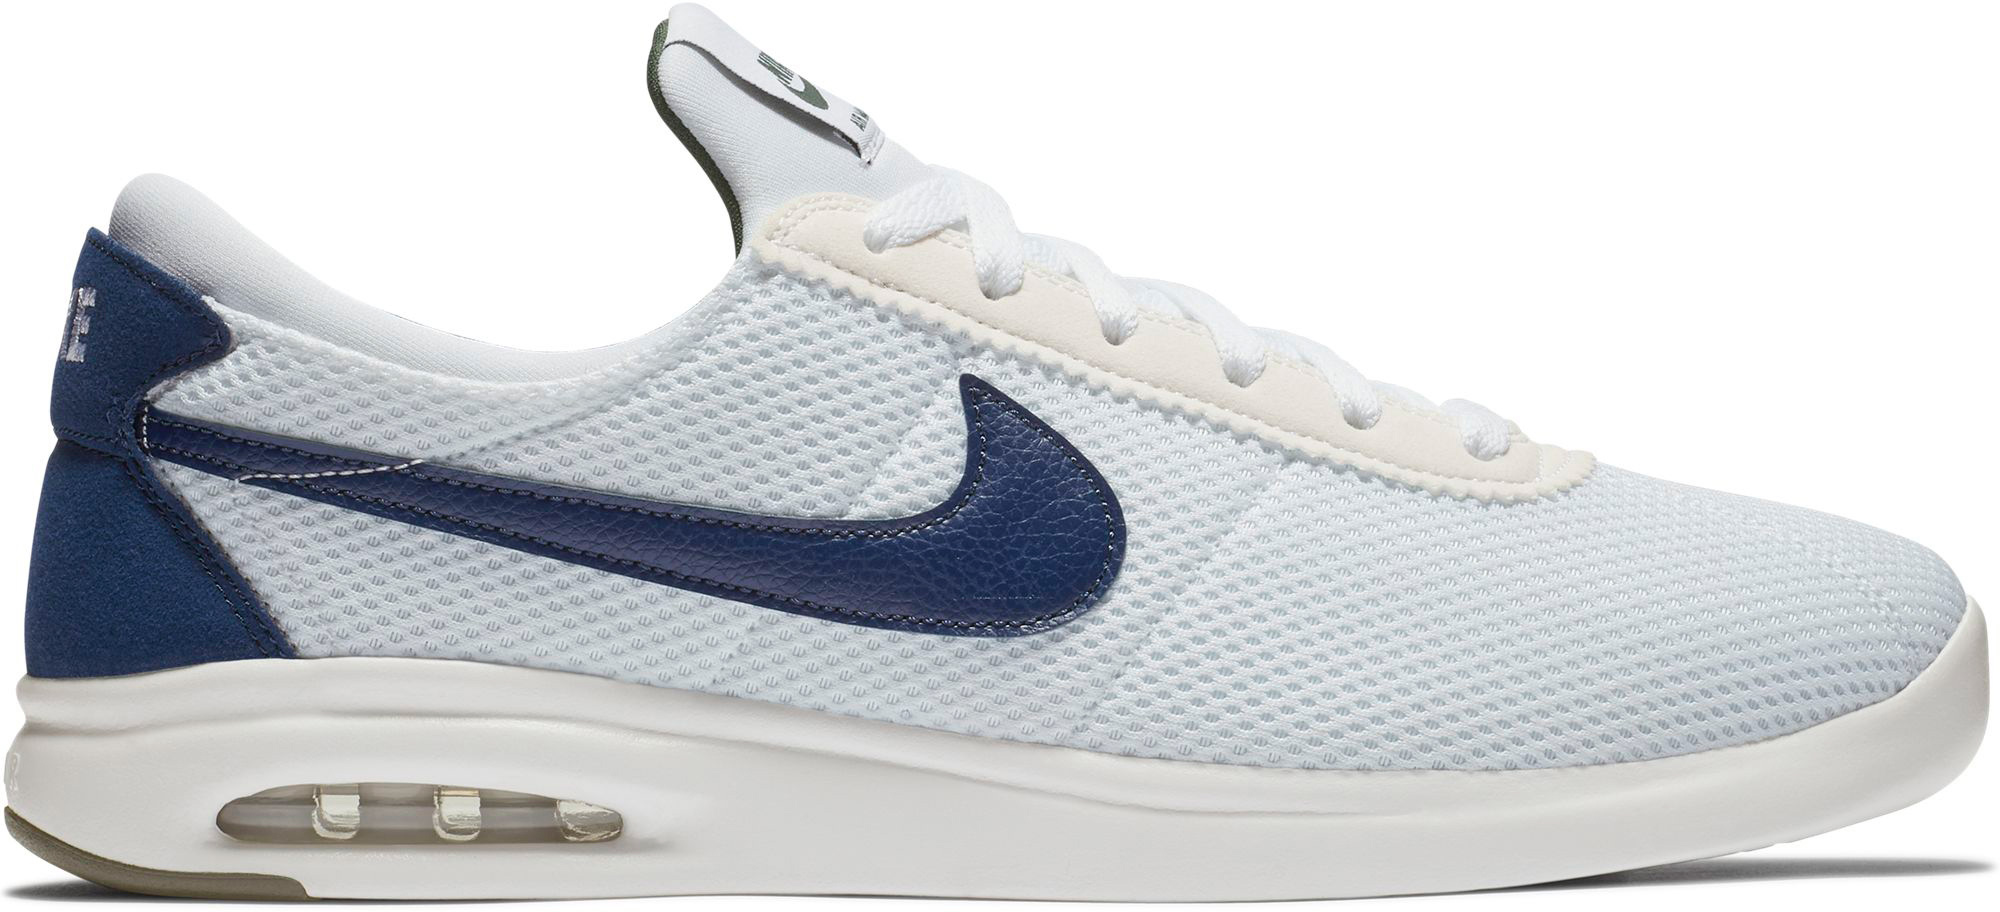 e80403051d2 SB Air Max Bruin Vapor - White Blue Void-Midnight GreenMens - Flying ...